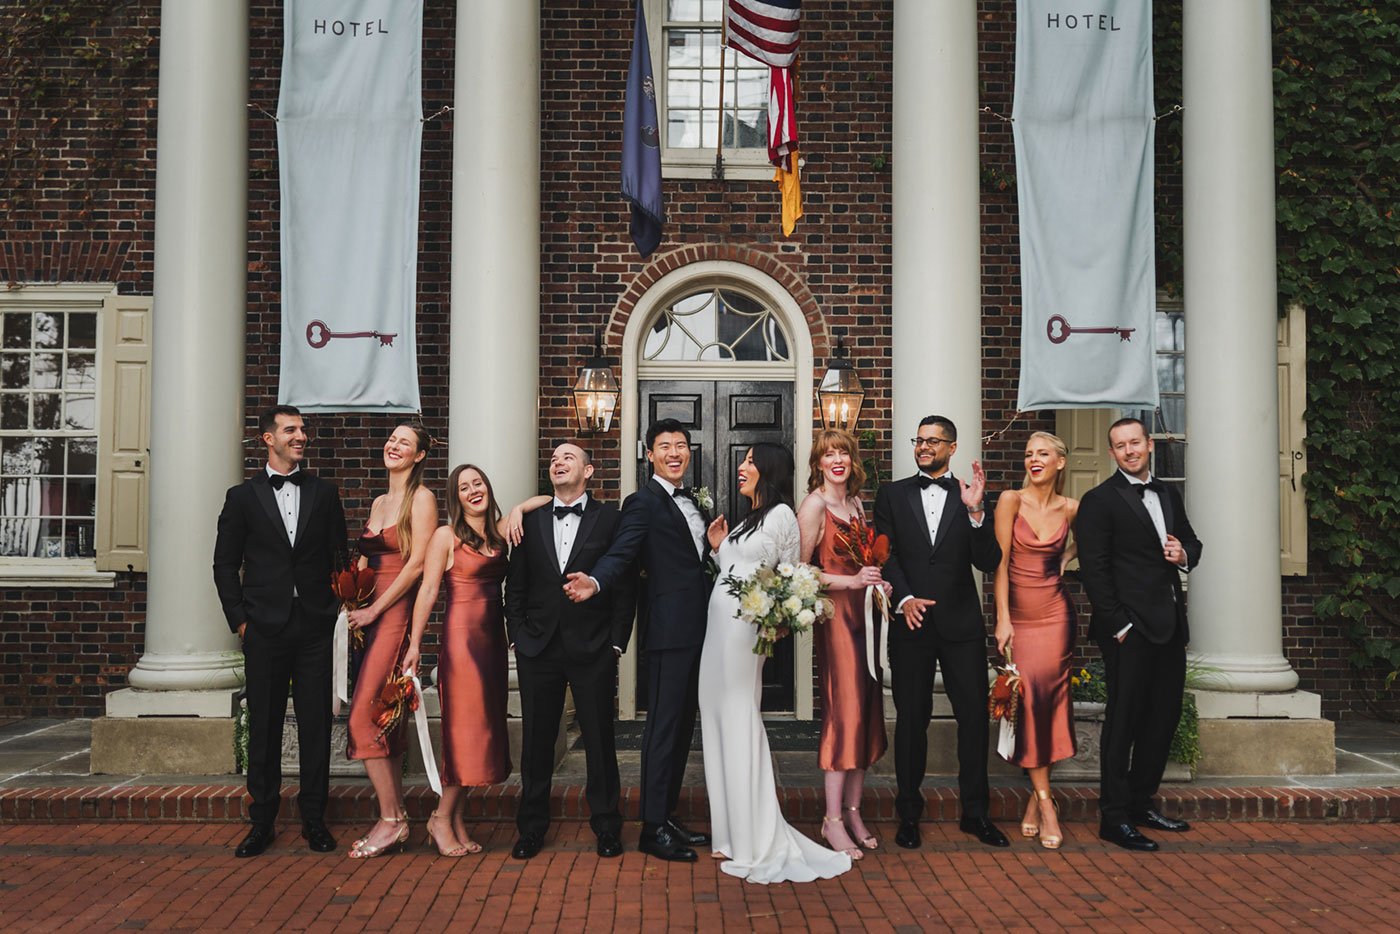 fun bridal party shot at Morris House Hotel by Weddings by Hanel